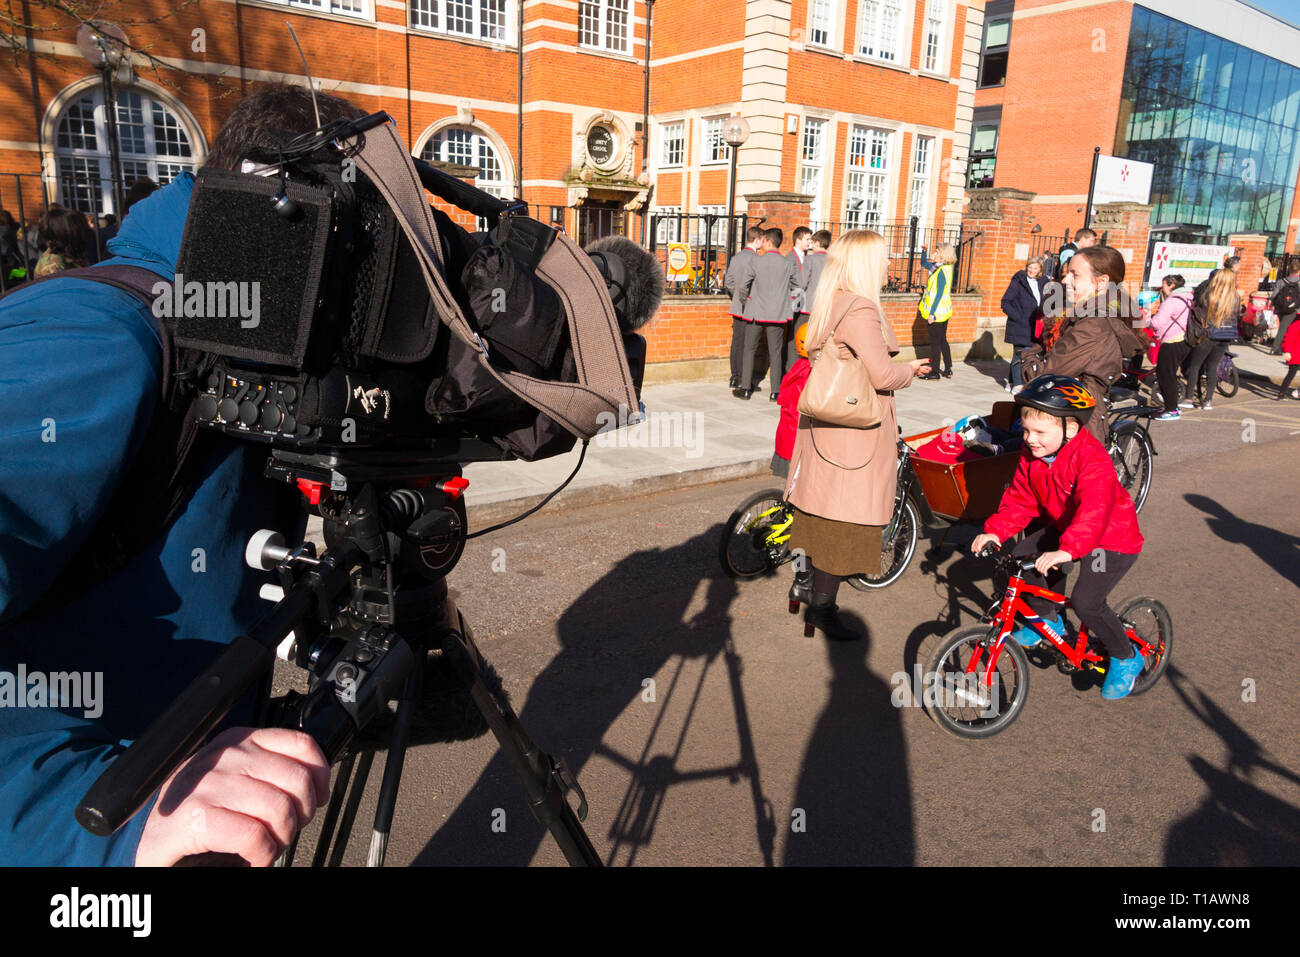 Itn Stock Photos & Itn Stock Images - Page 2 - Alamy